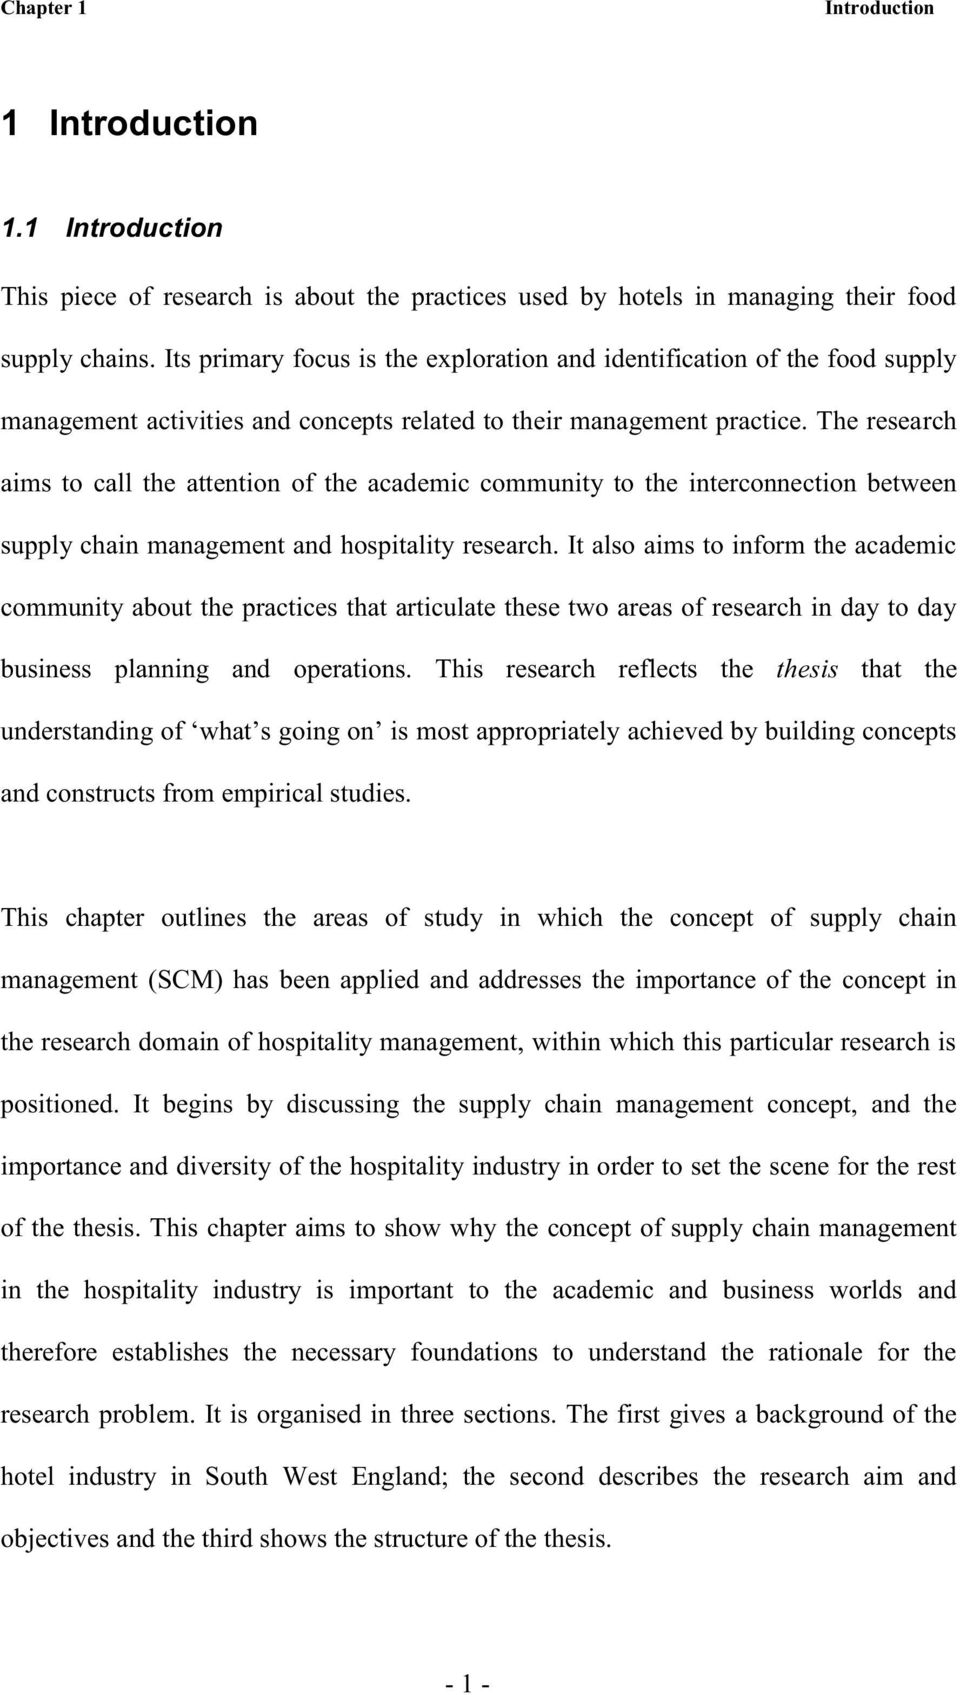 Phd thesis on job shop scheduling